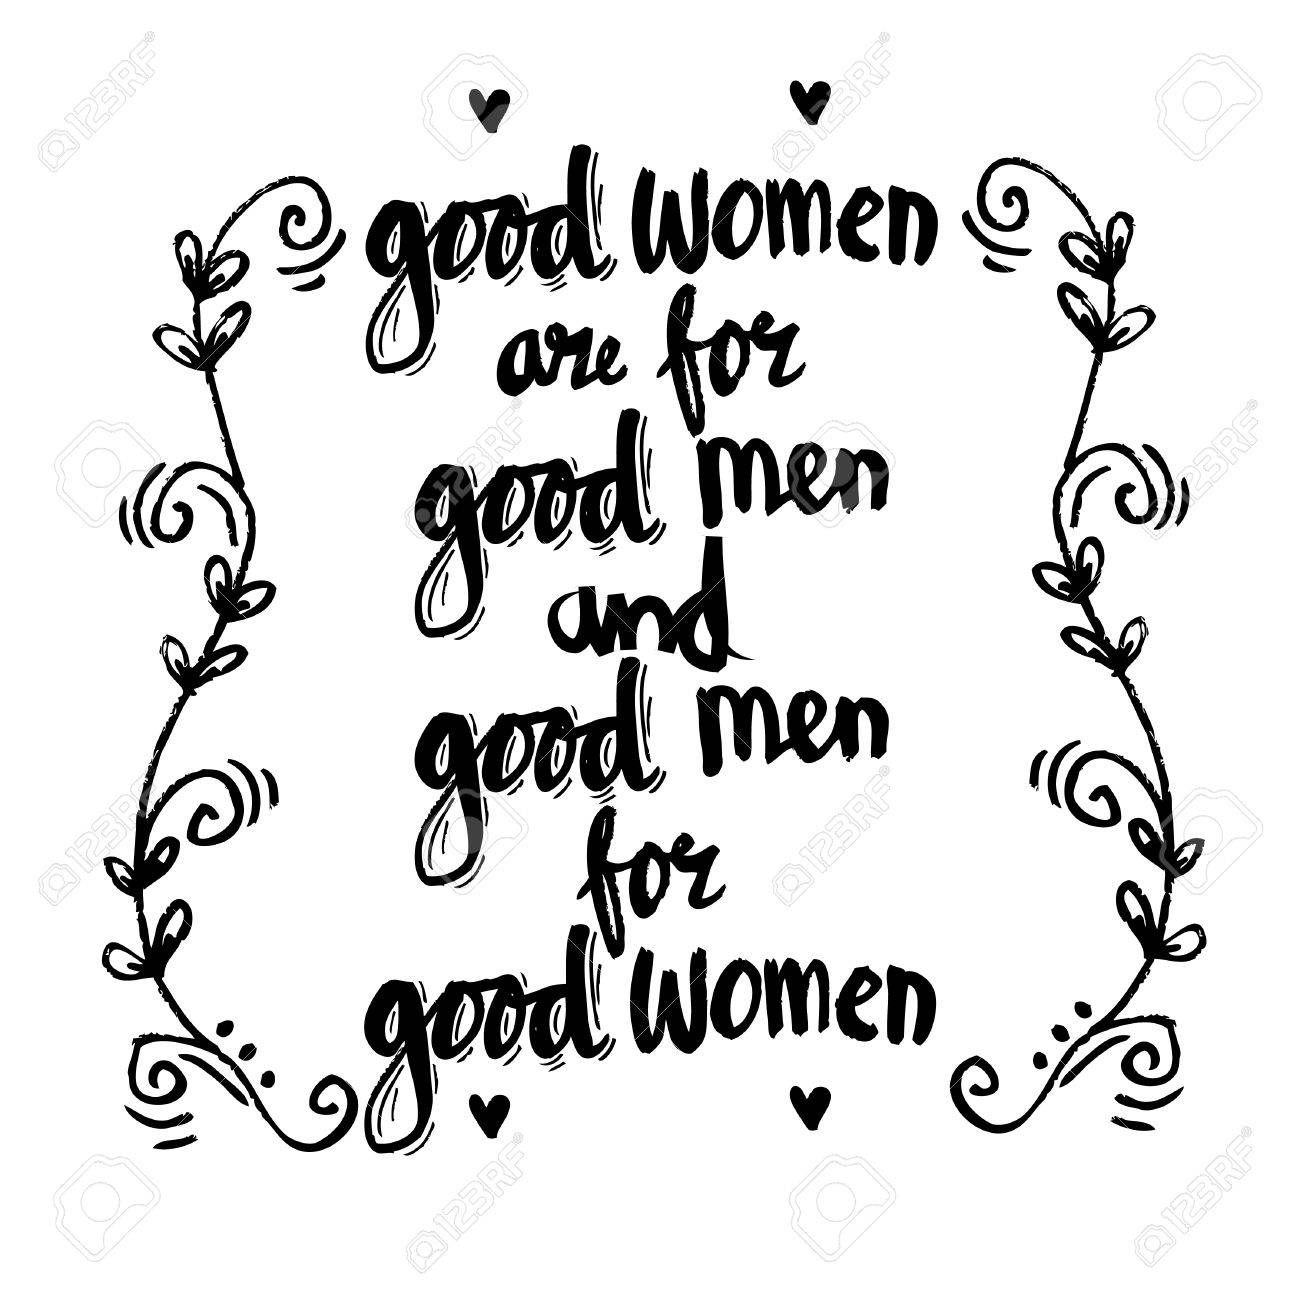 Good women are for good men and good men for good womwn. Islamic..